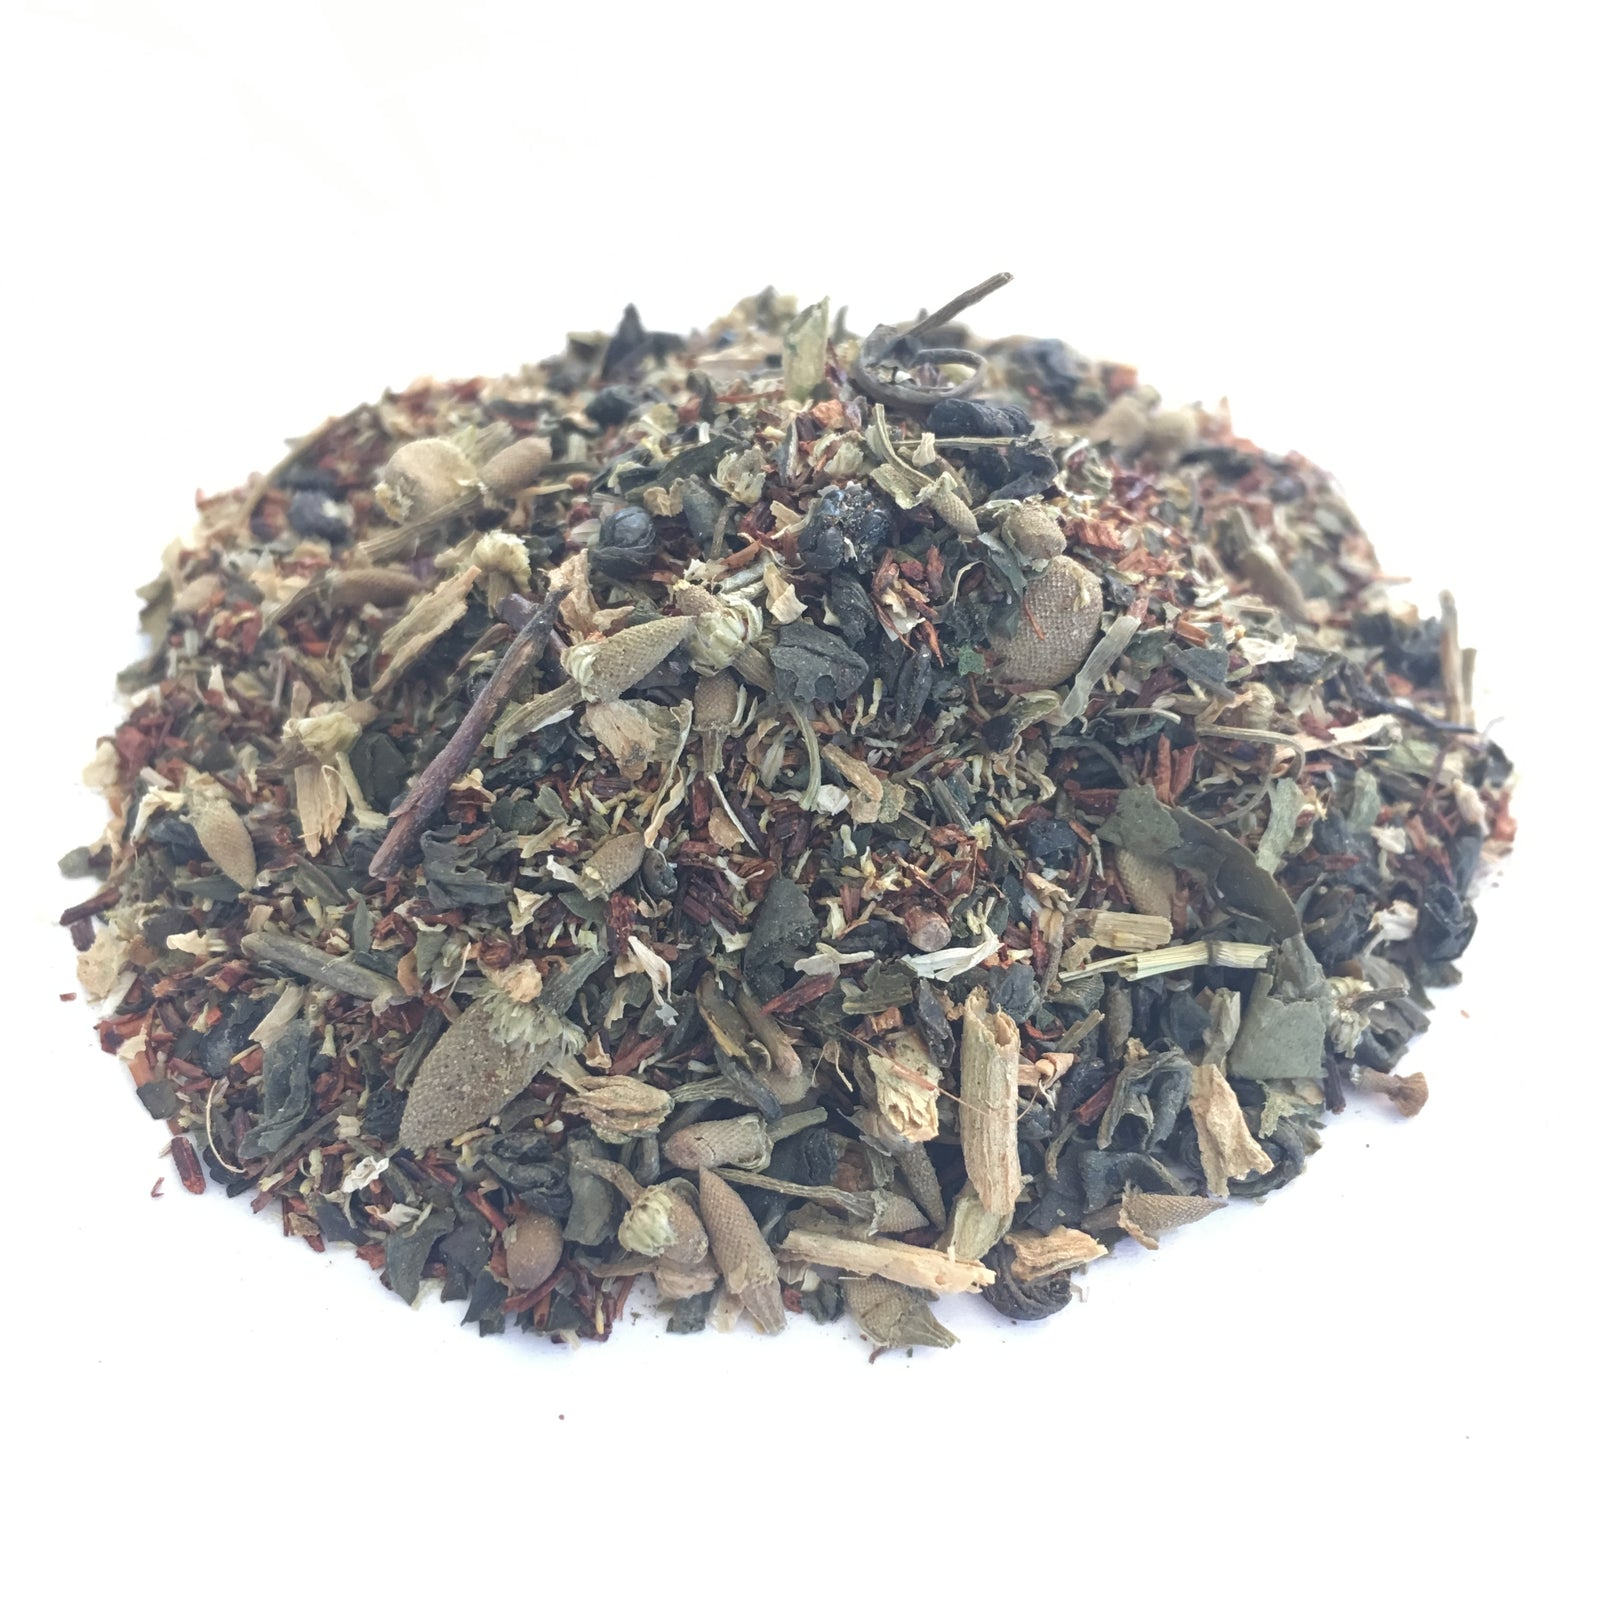 KannaBliss Tea Mix - Kanna (Sceletium tortuosum) Herbal Tea Mixture